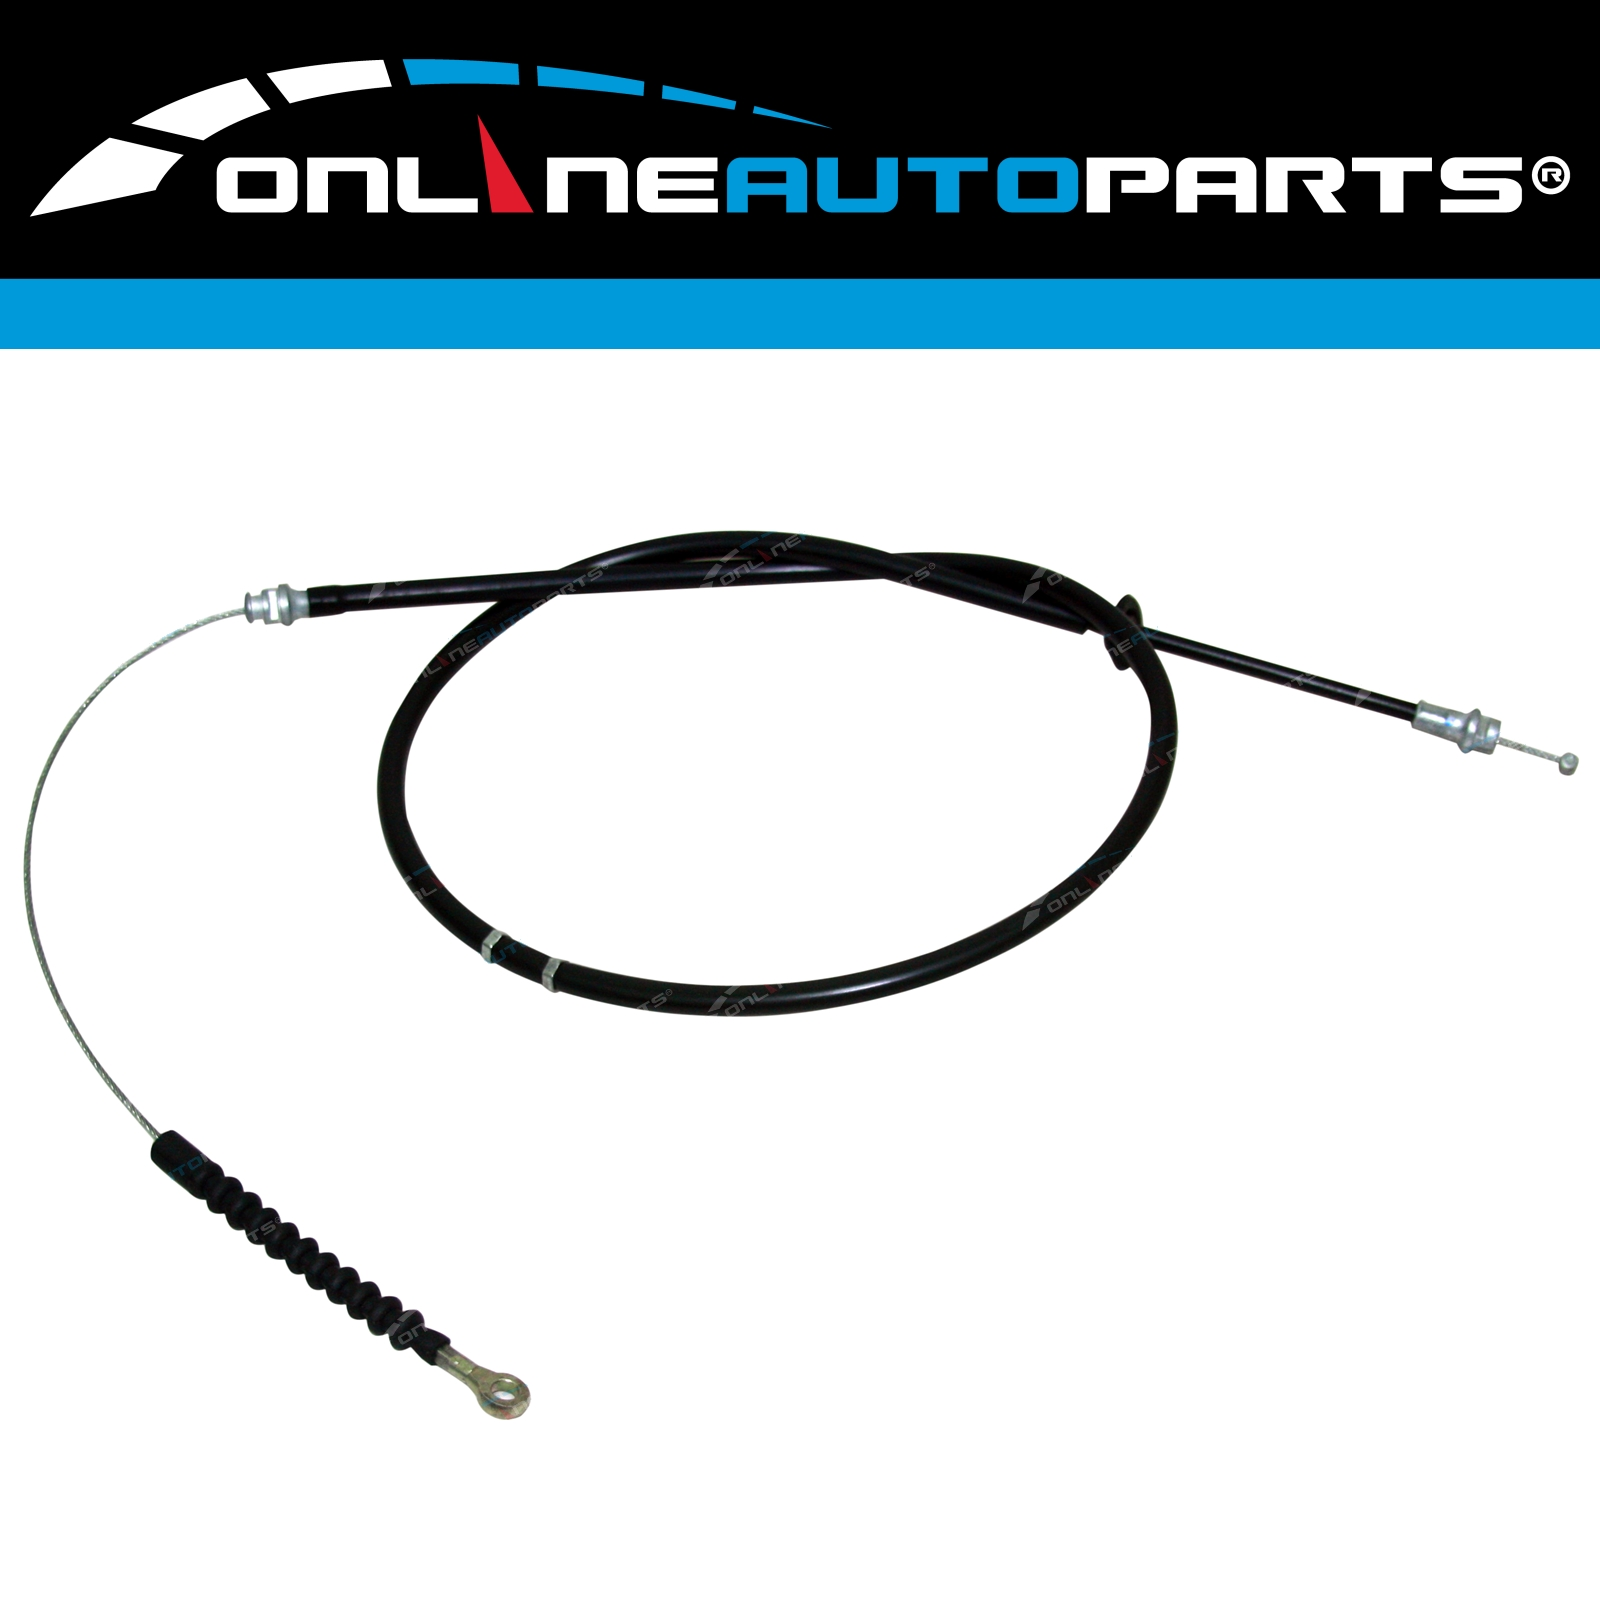 Front Park Brake Cable Assembly suits Toyota Hilux LN167